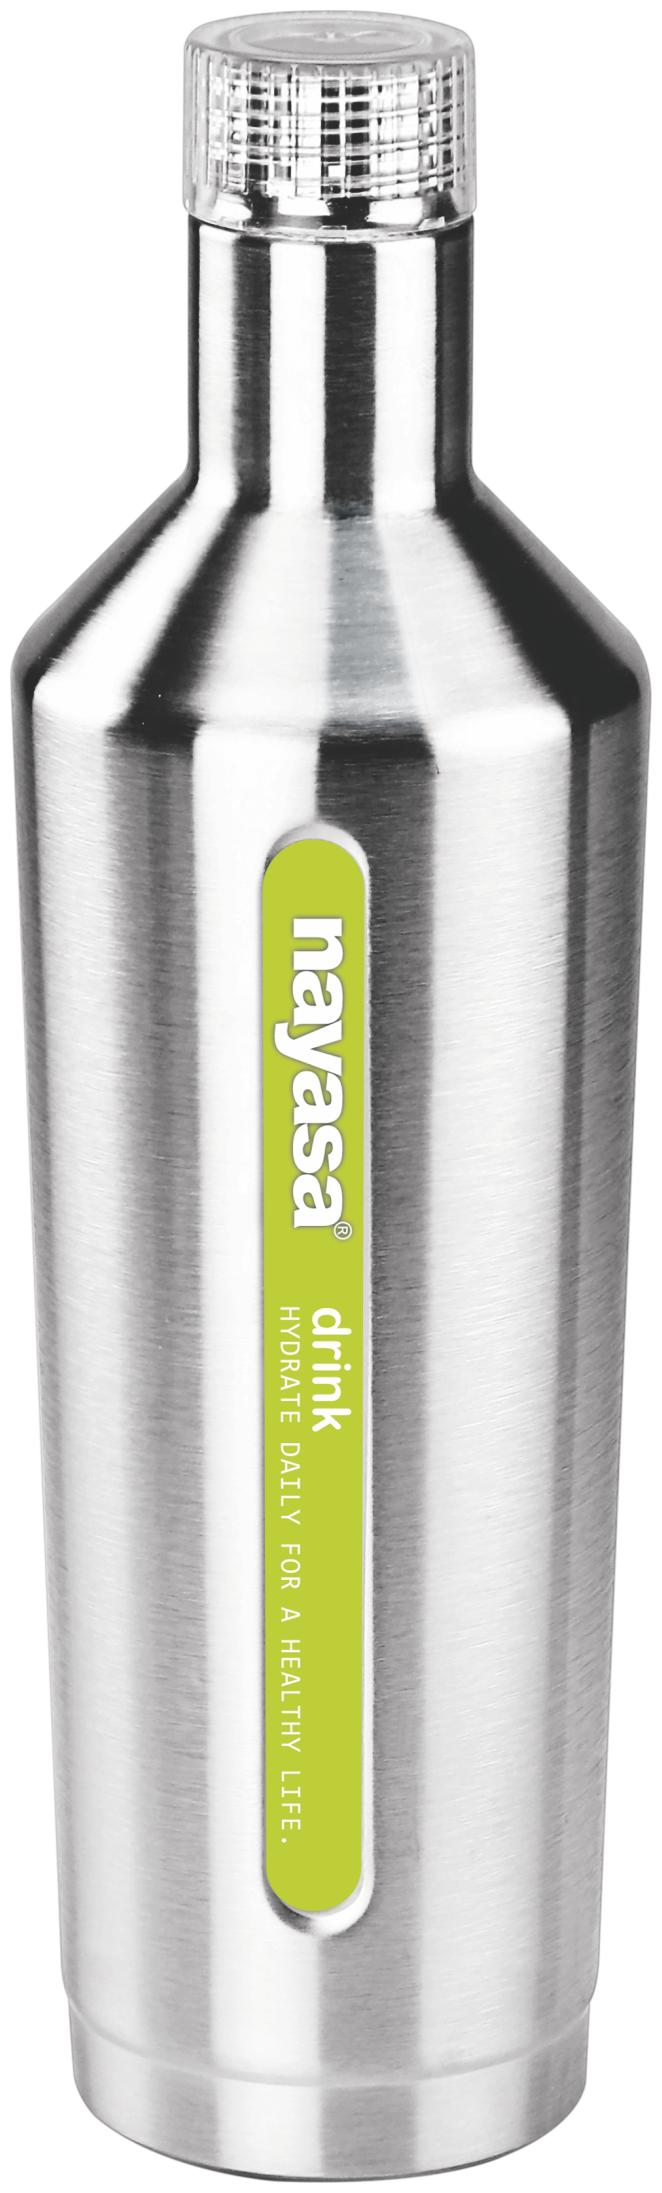 Nayasa Stainless Steel Drink Bottle 1100 ml